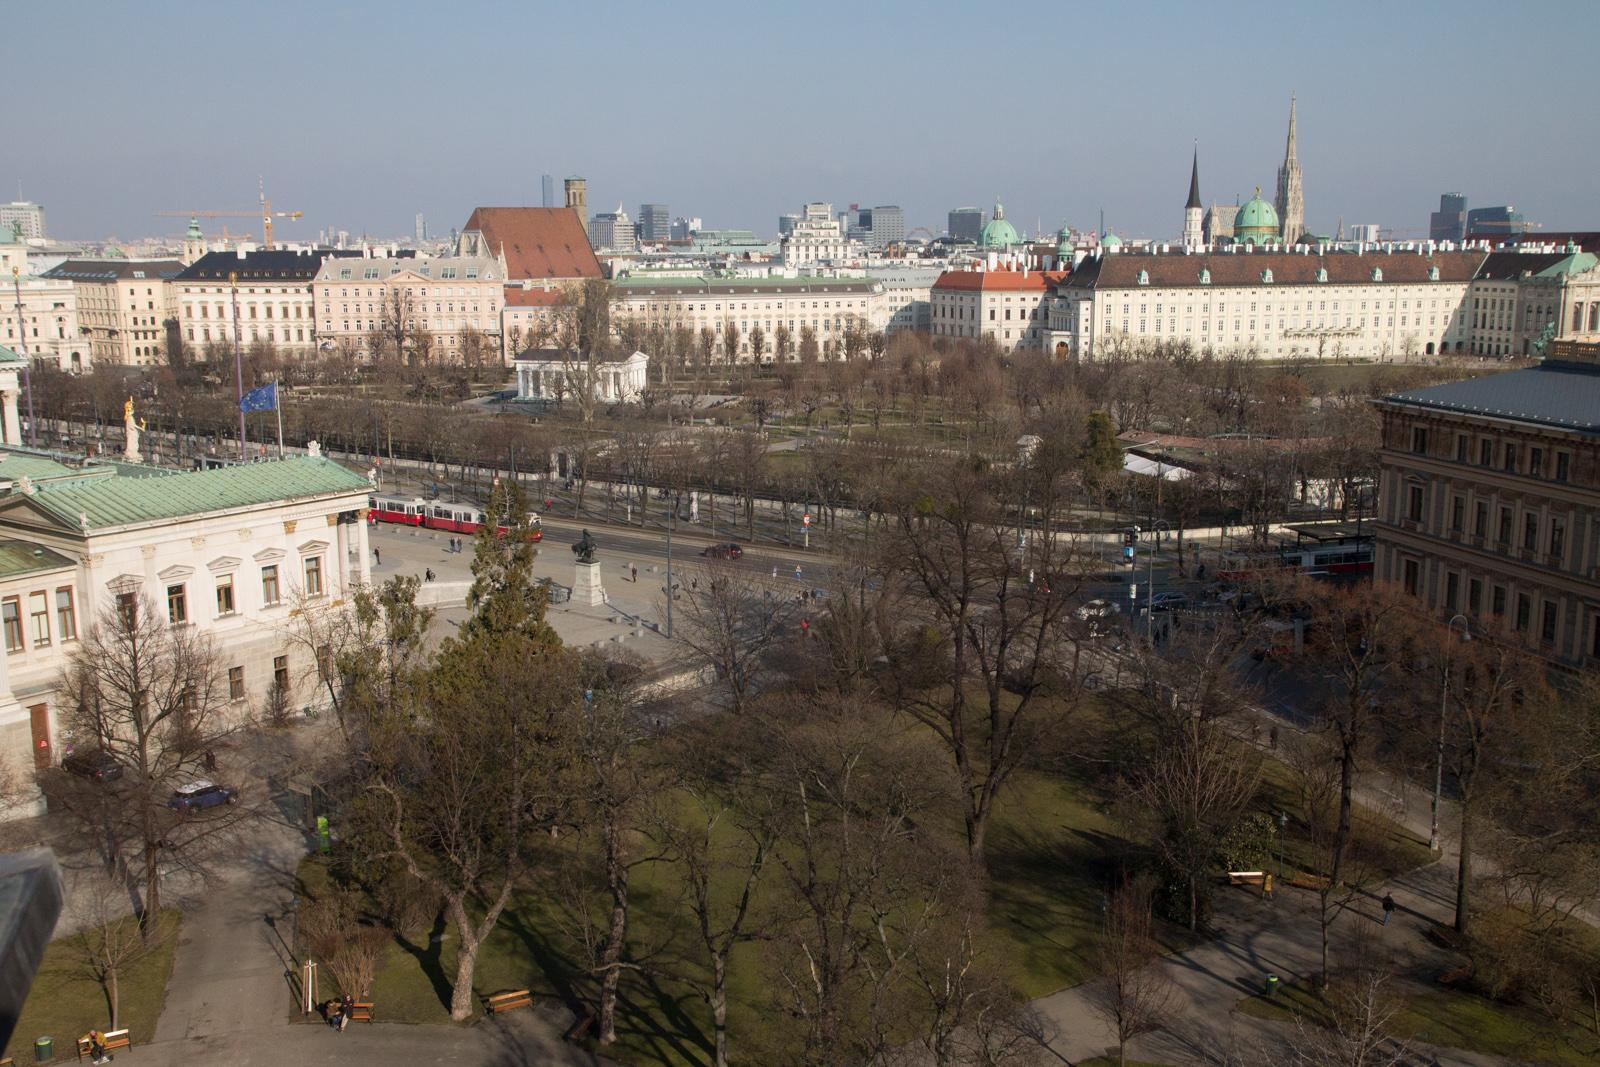 View on Vienna from the Palais Trautson